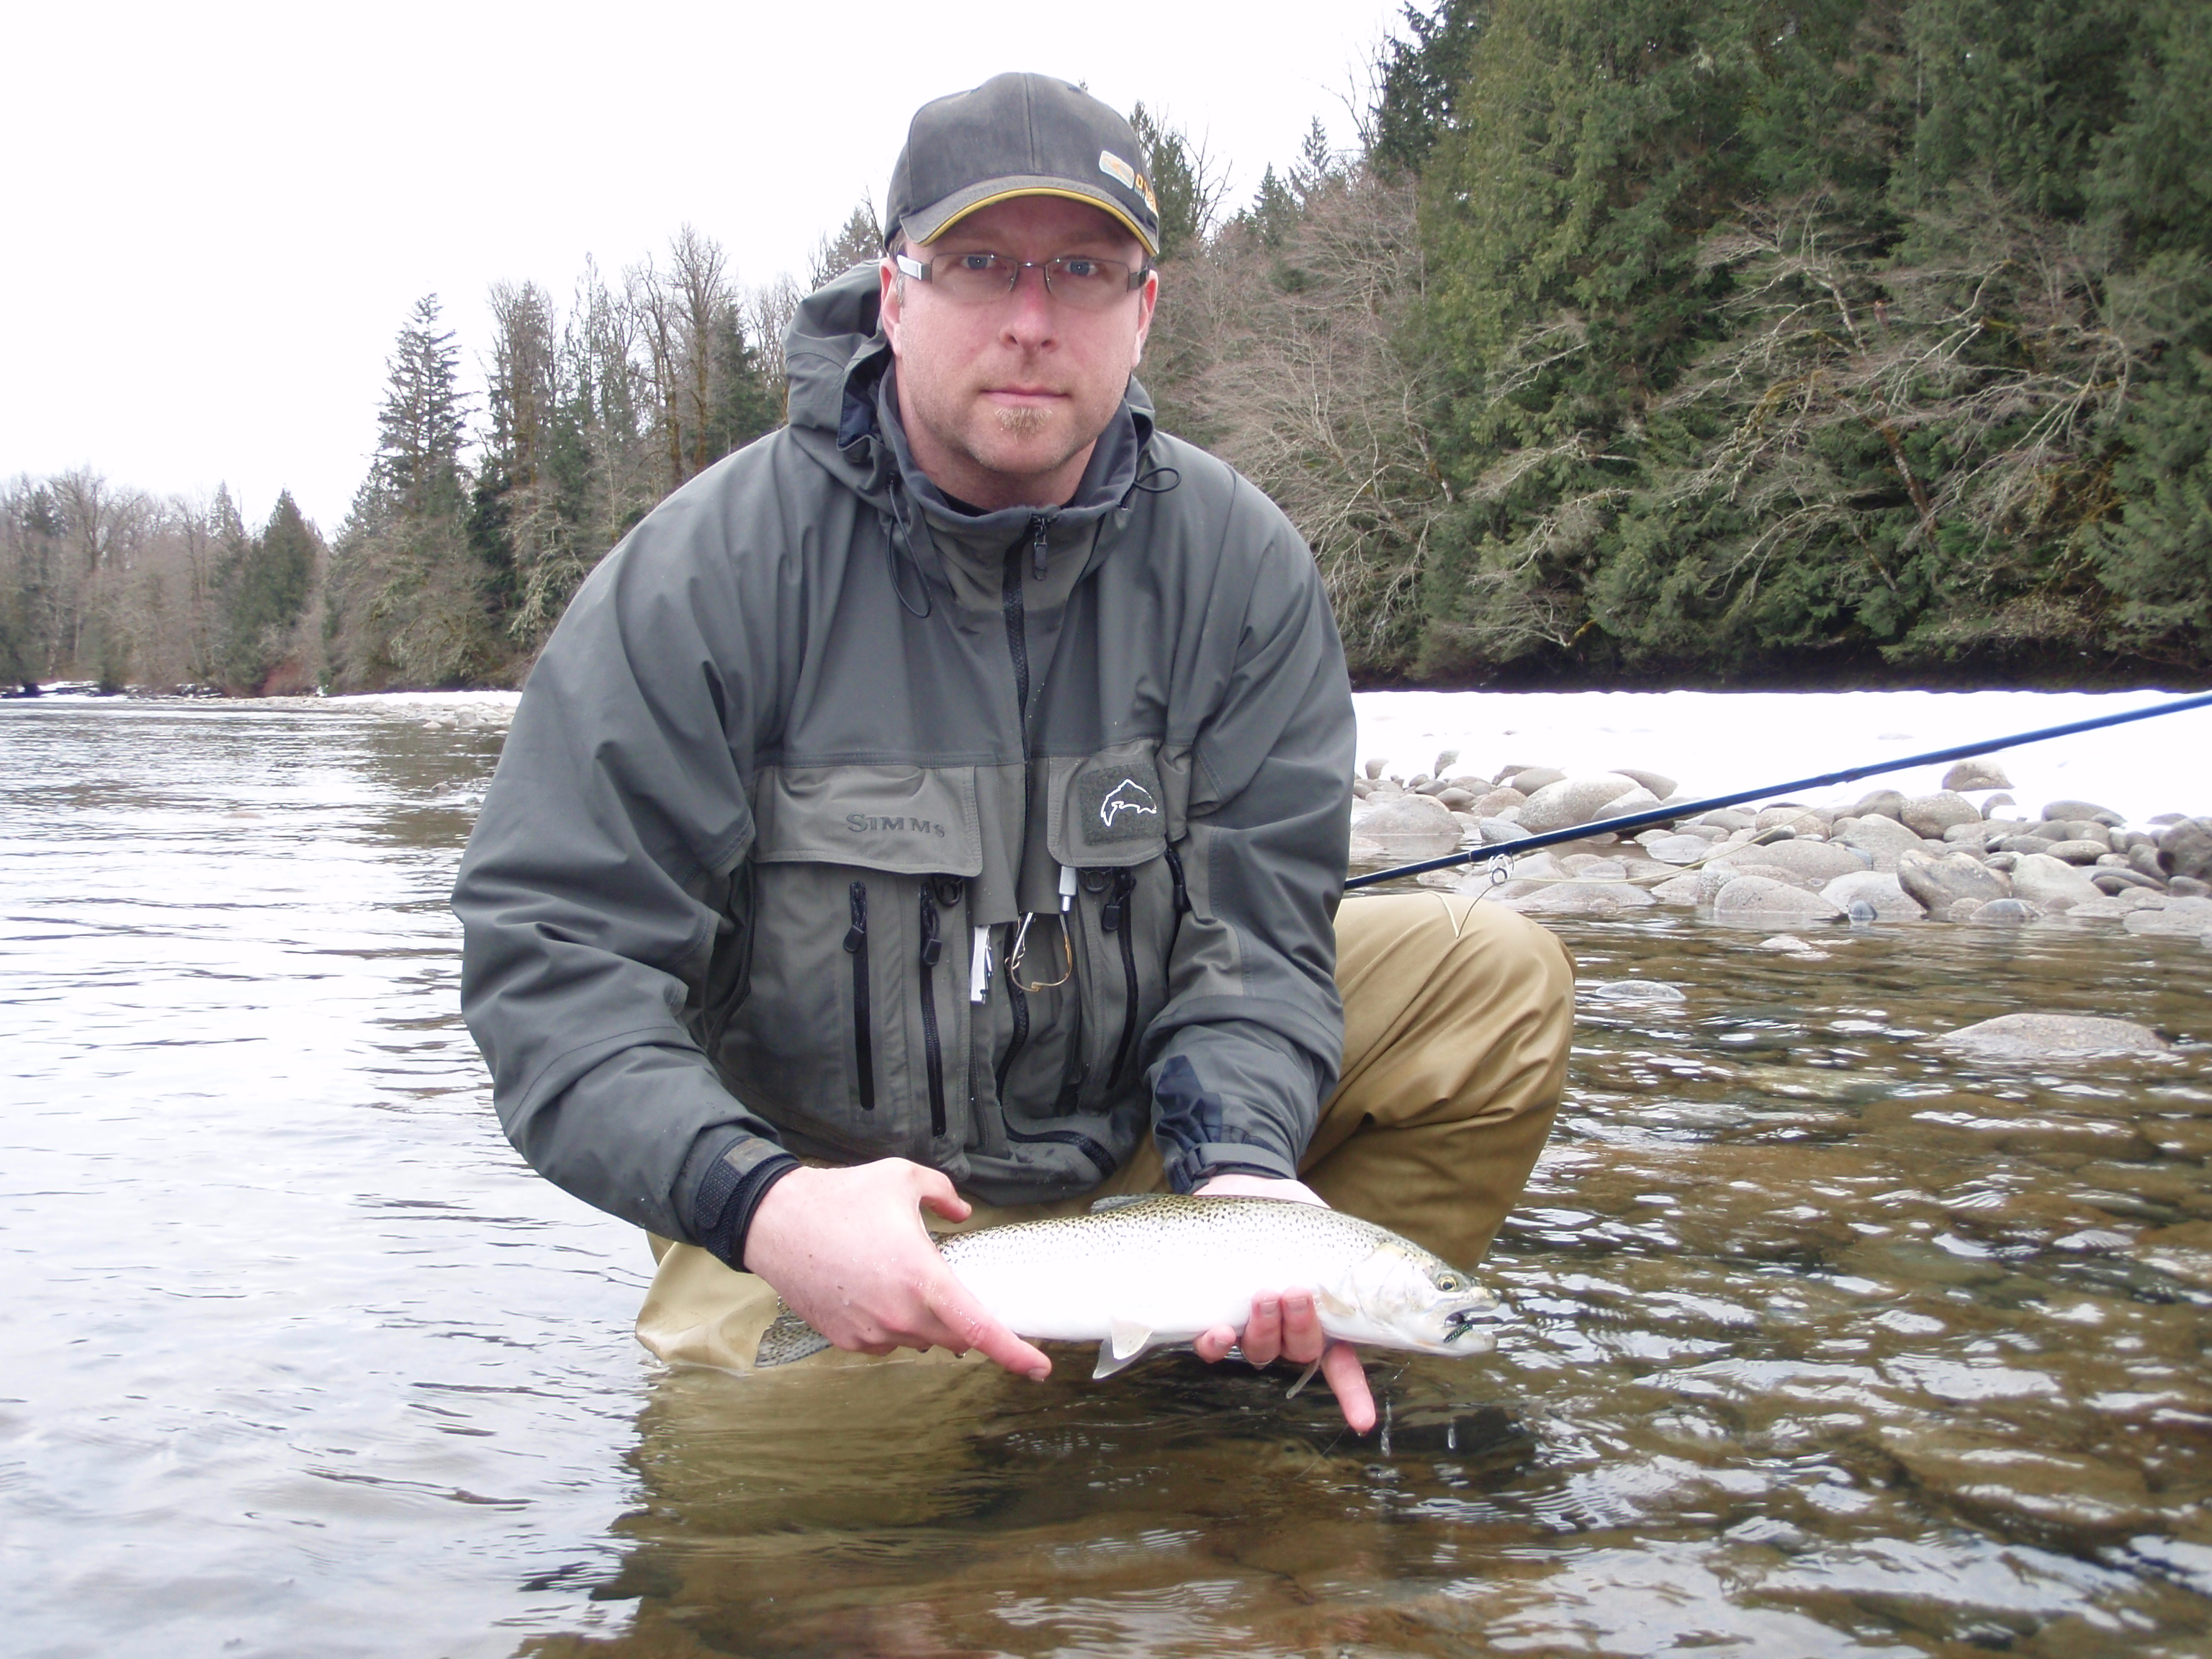 <p>A full day travelling by jet boat, fly fishing the Fraser River, Harrison River, and some of their backwaters on the hunt for Searun Cutthroat trout on the fly.</p>    <P>